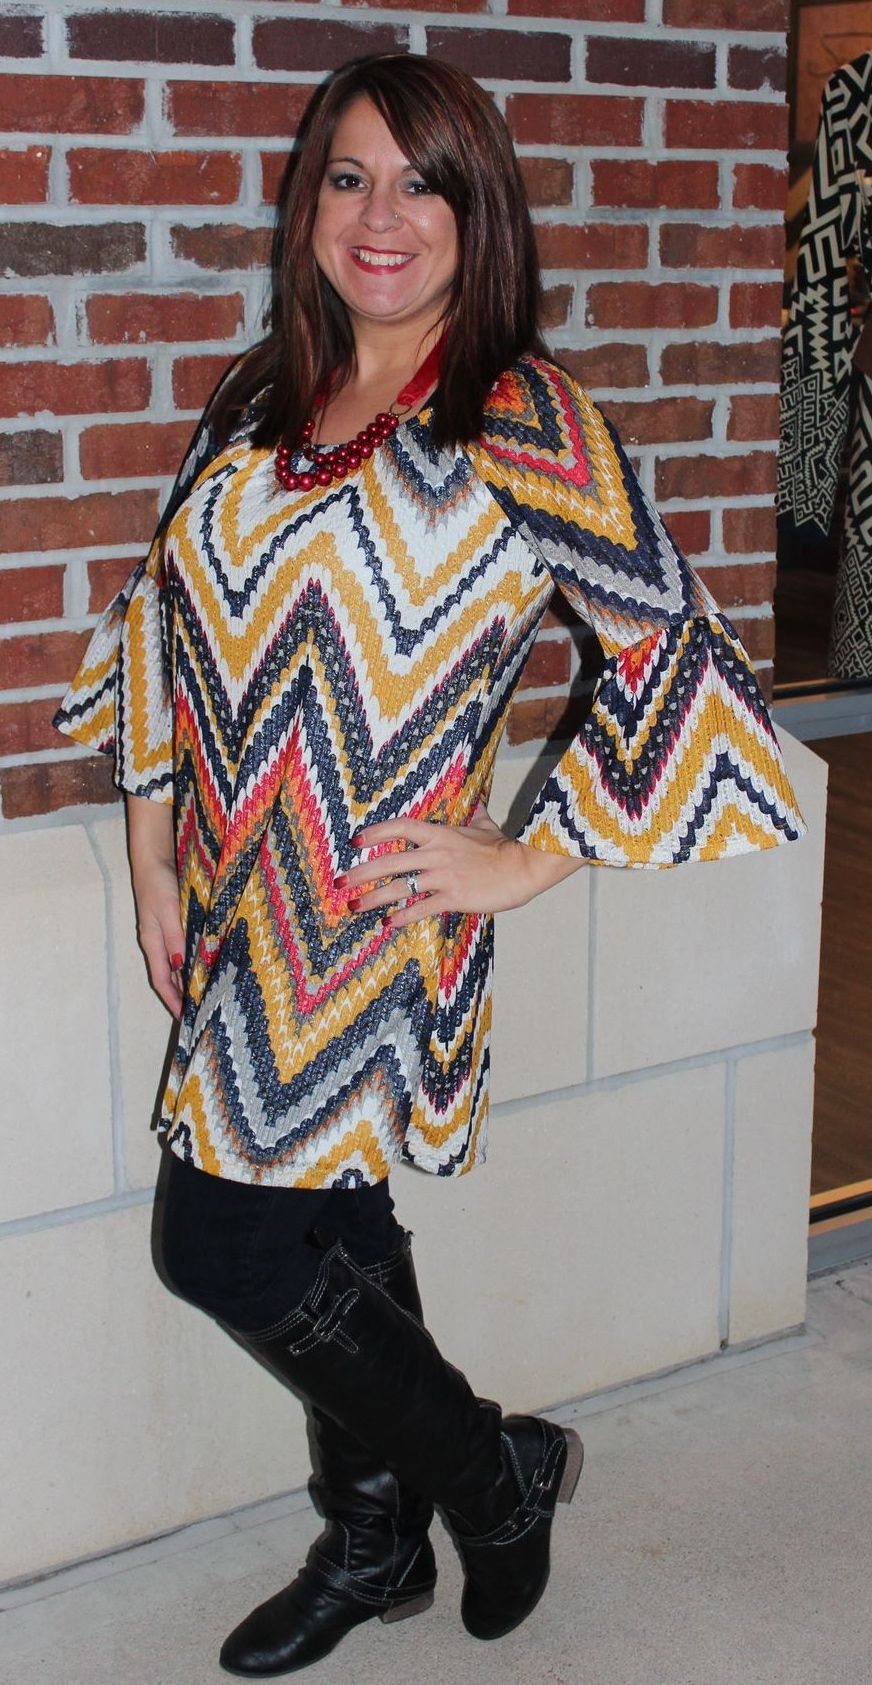 """Chase Away the Cold Weather Blues"" Tunic - $42 Call 31-889-1150 or email jen@jendaisy.com to order!"